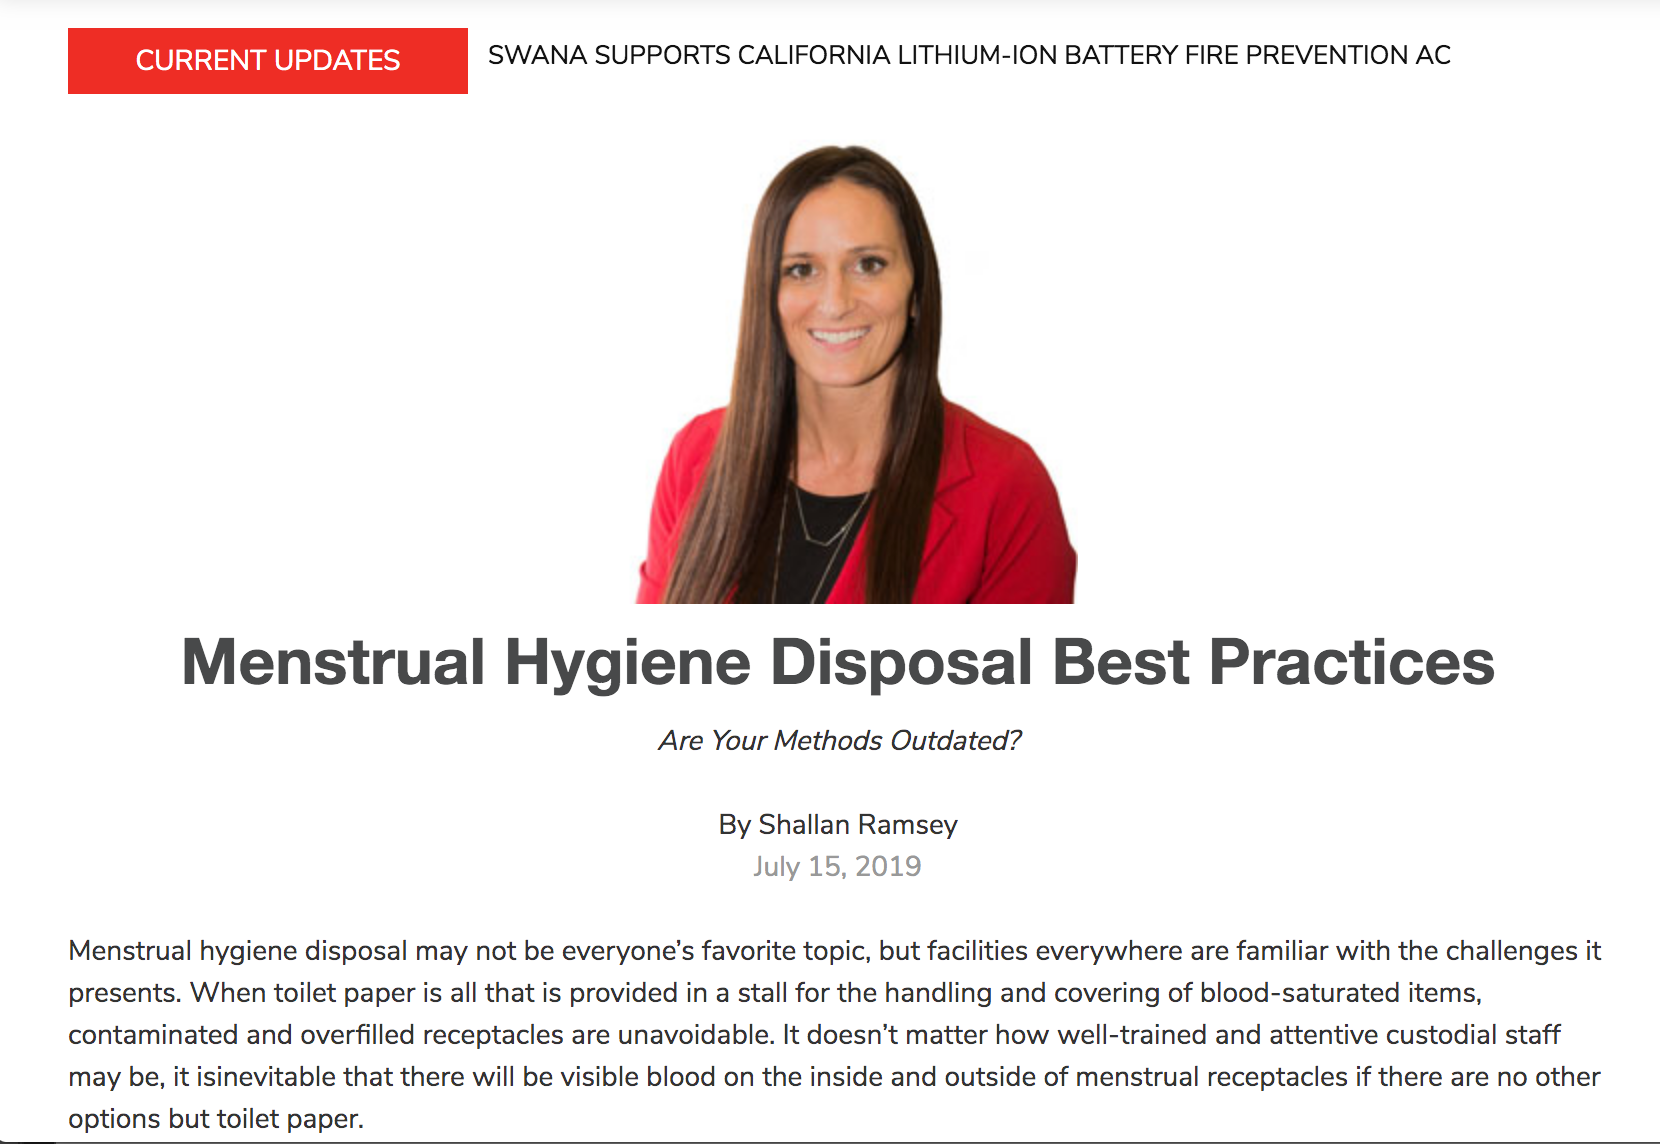 Article - Best Practice for Menstrual Hygiene Disposal